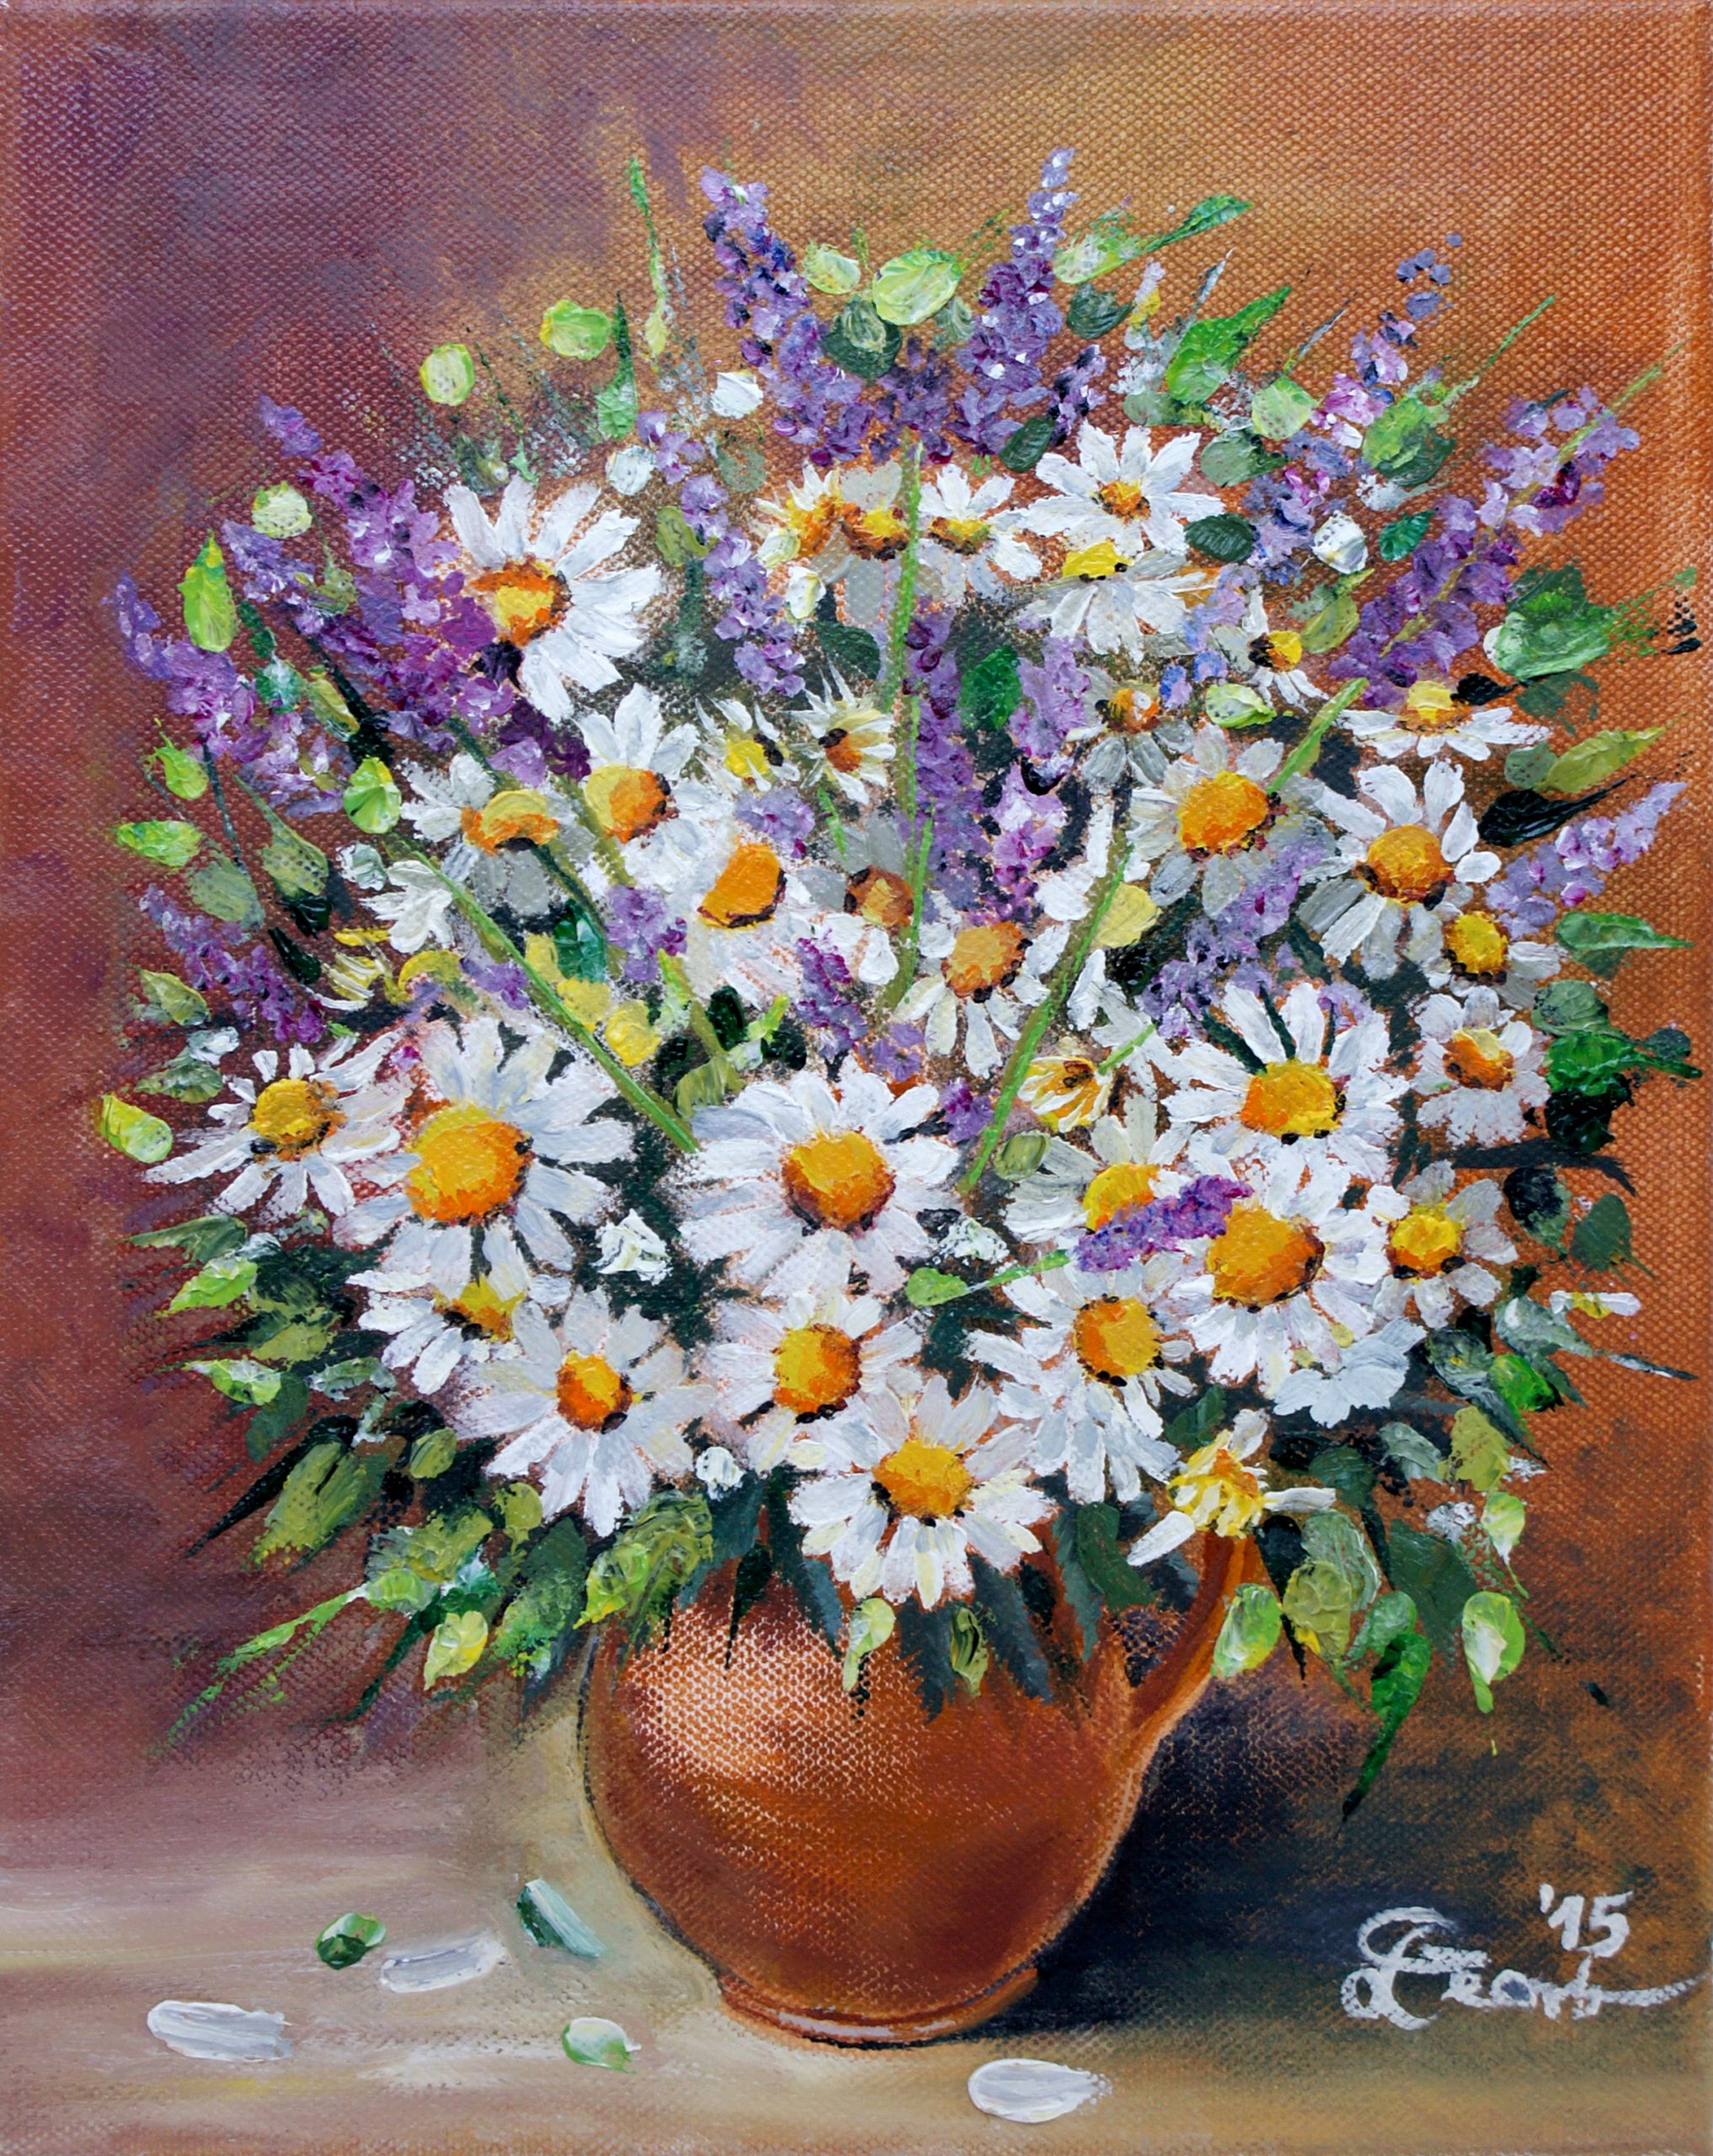 Daisies-and-lavender-livia-geambasu-all-rights-reserved